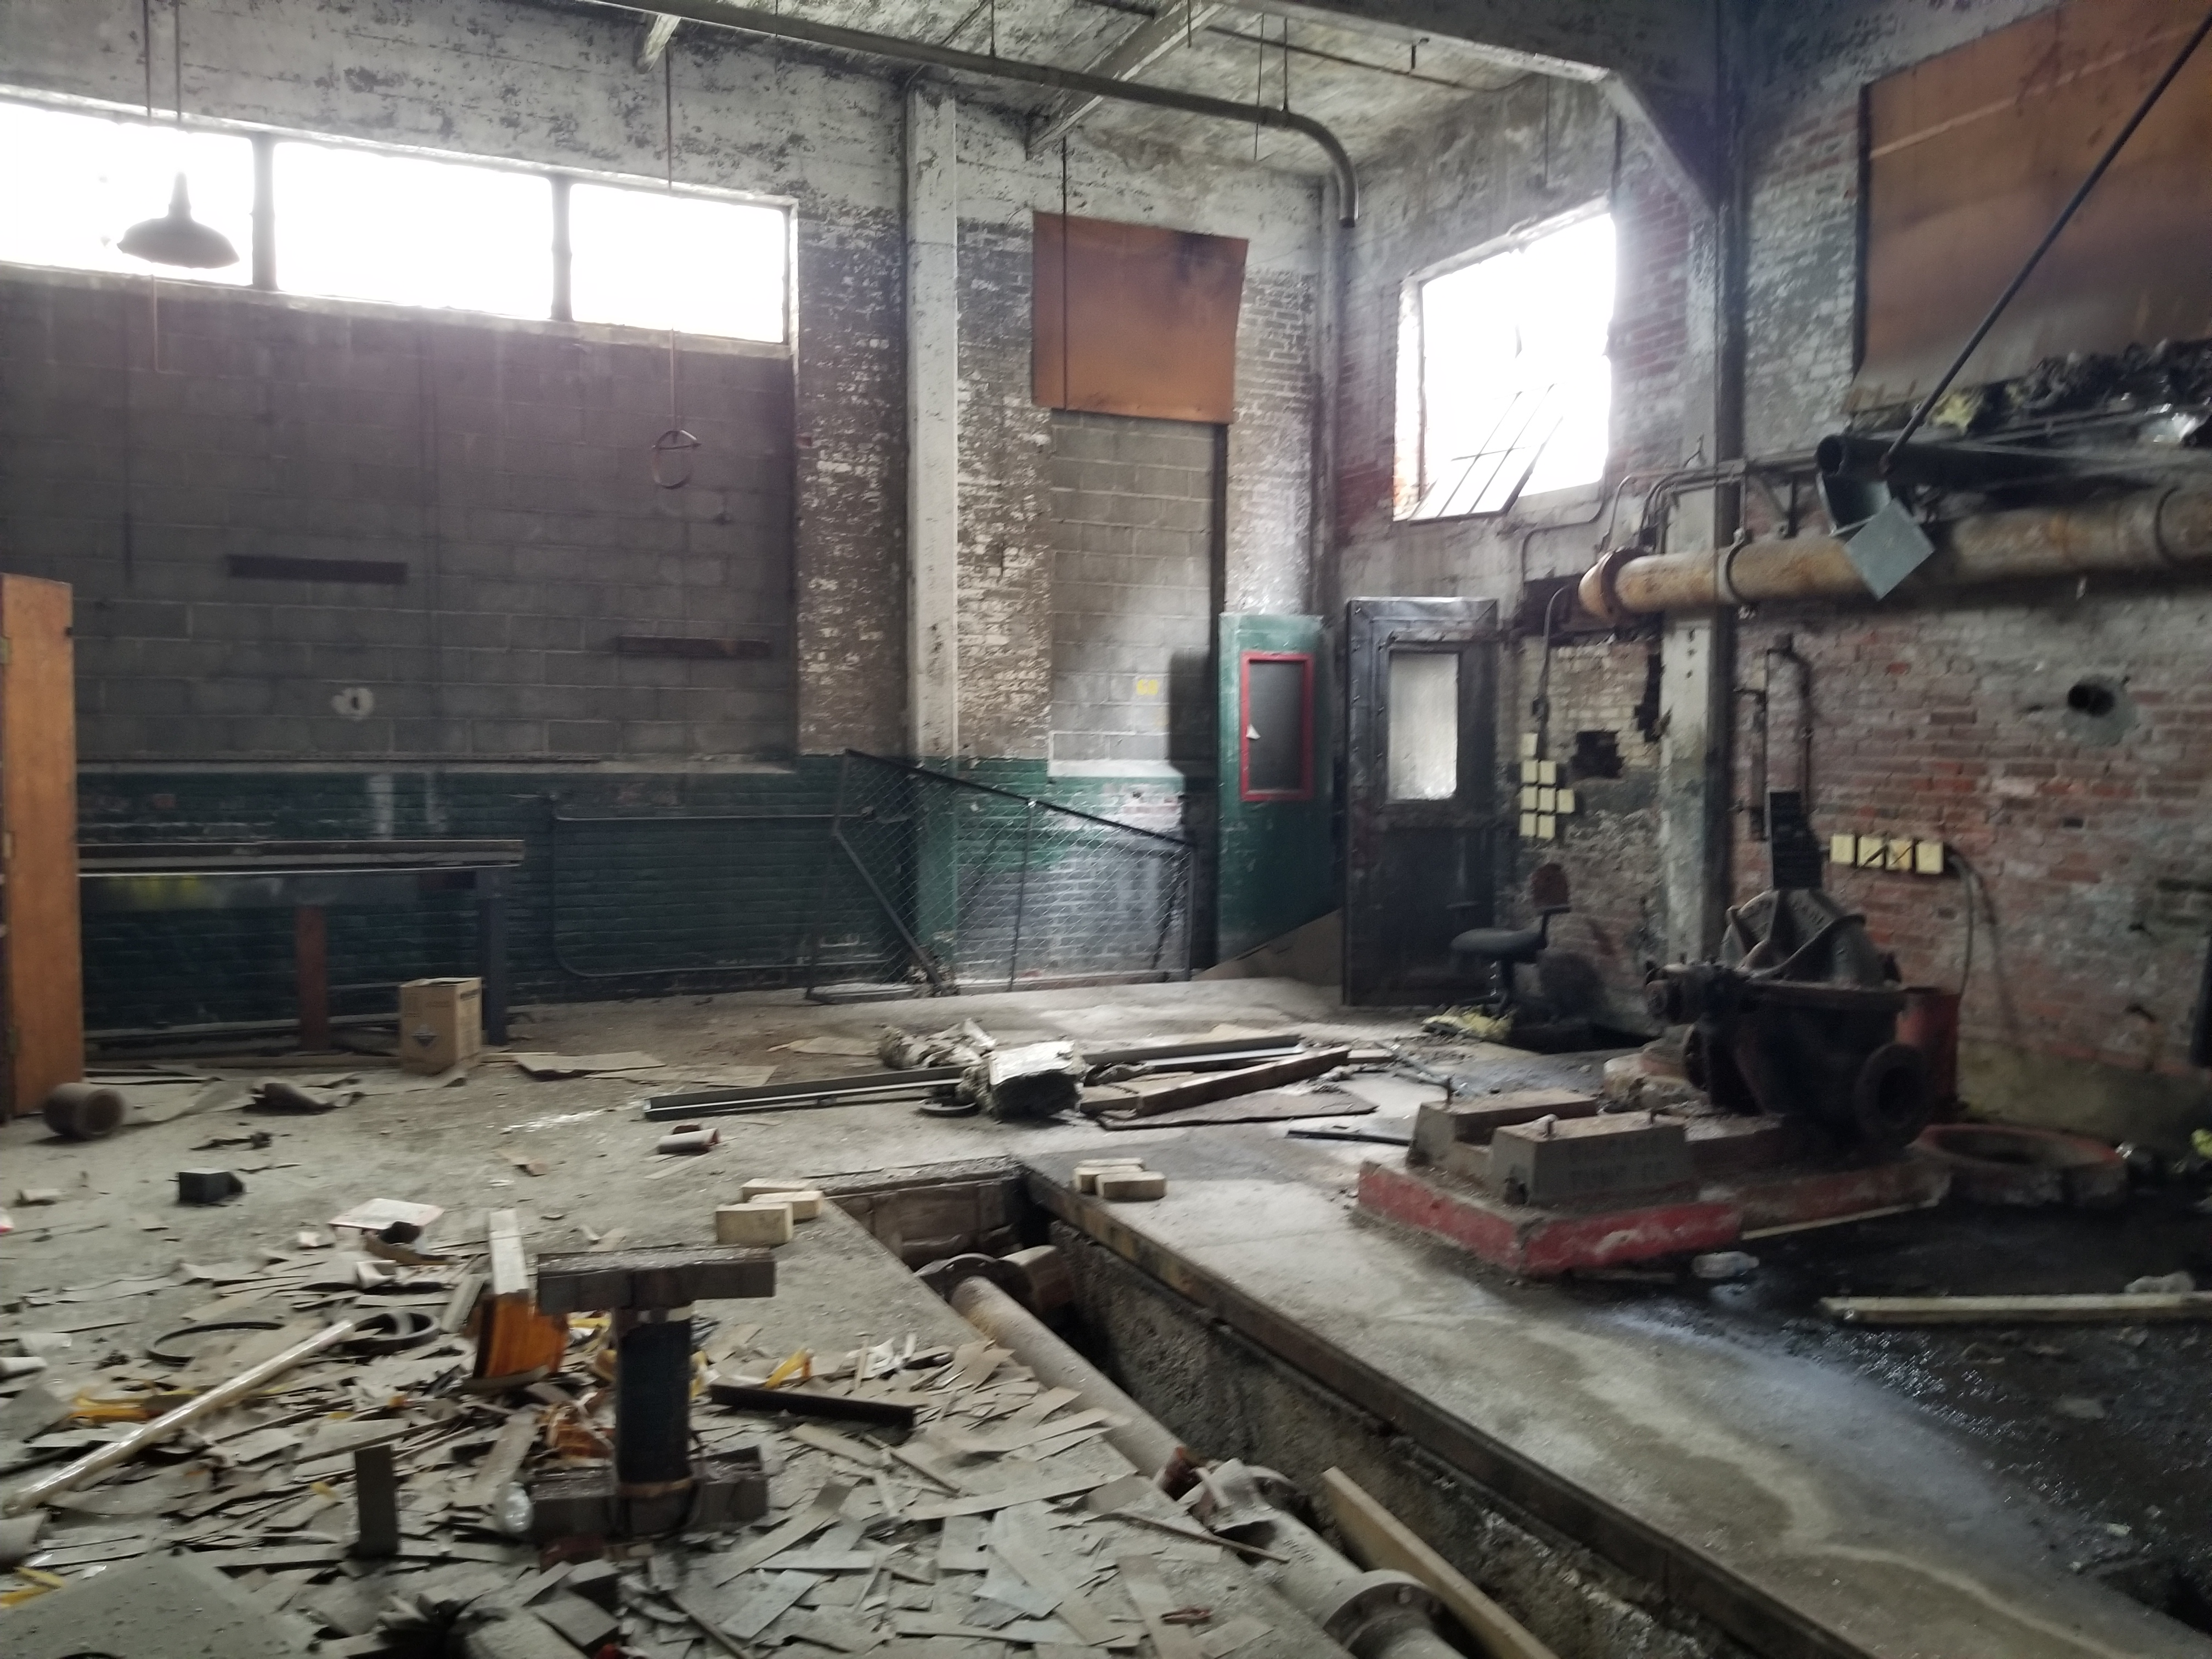 Just before Ori Feibush started demolition of the former Frankford Chocolate & Candy factory, this was the condition of the interior.